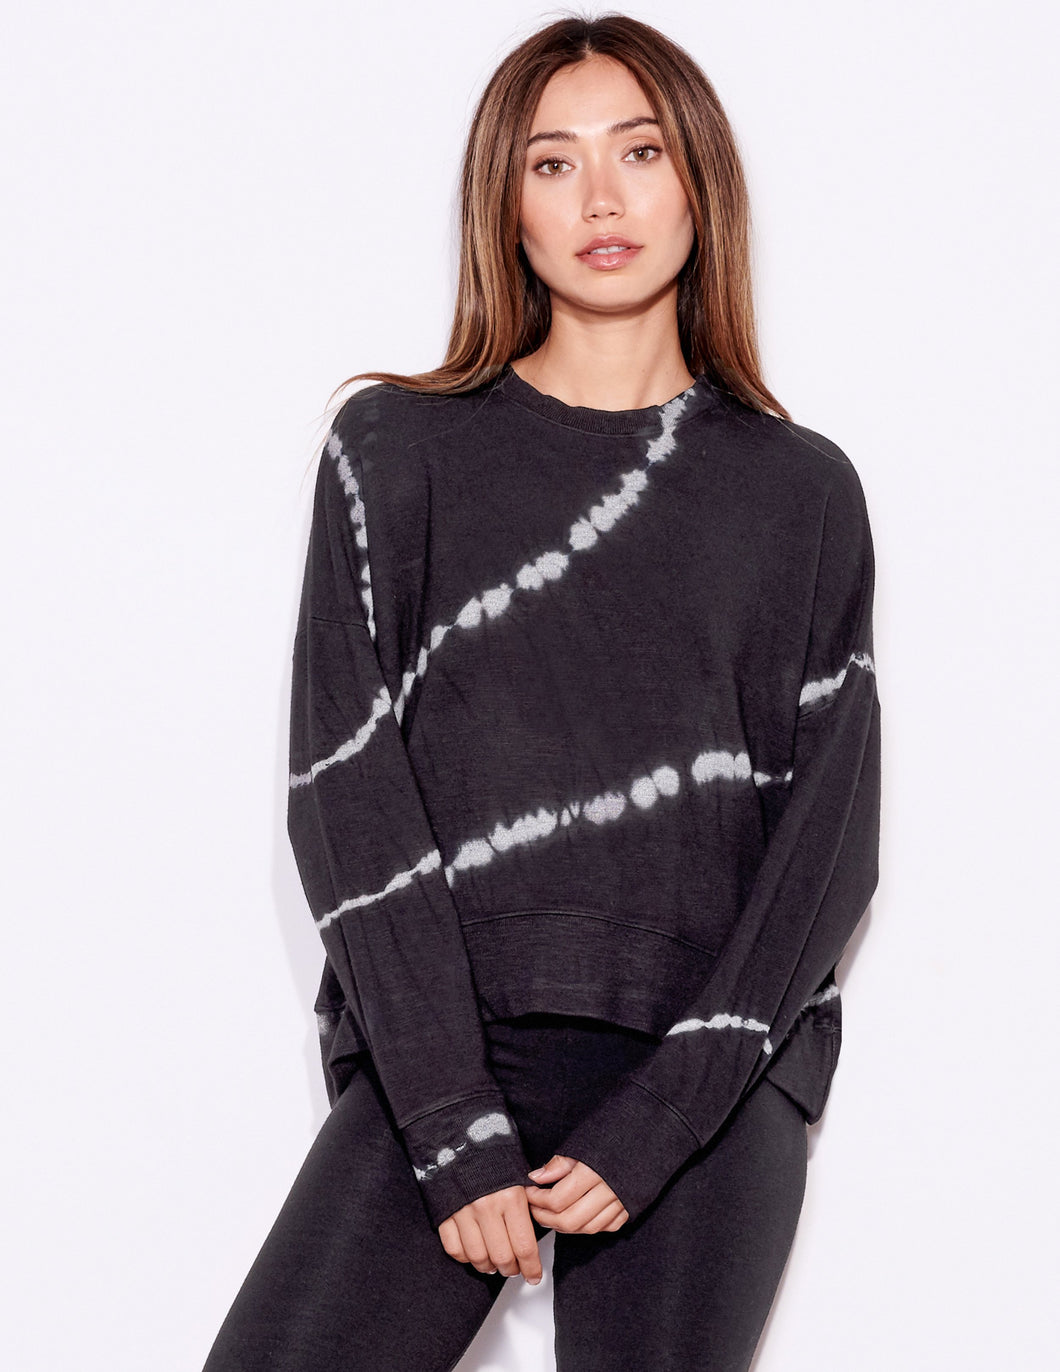 Tie Dye Oversized Sweatshirt - Coal